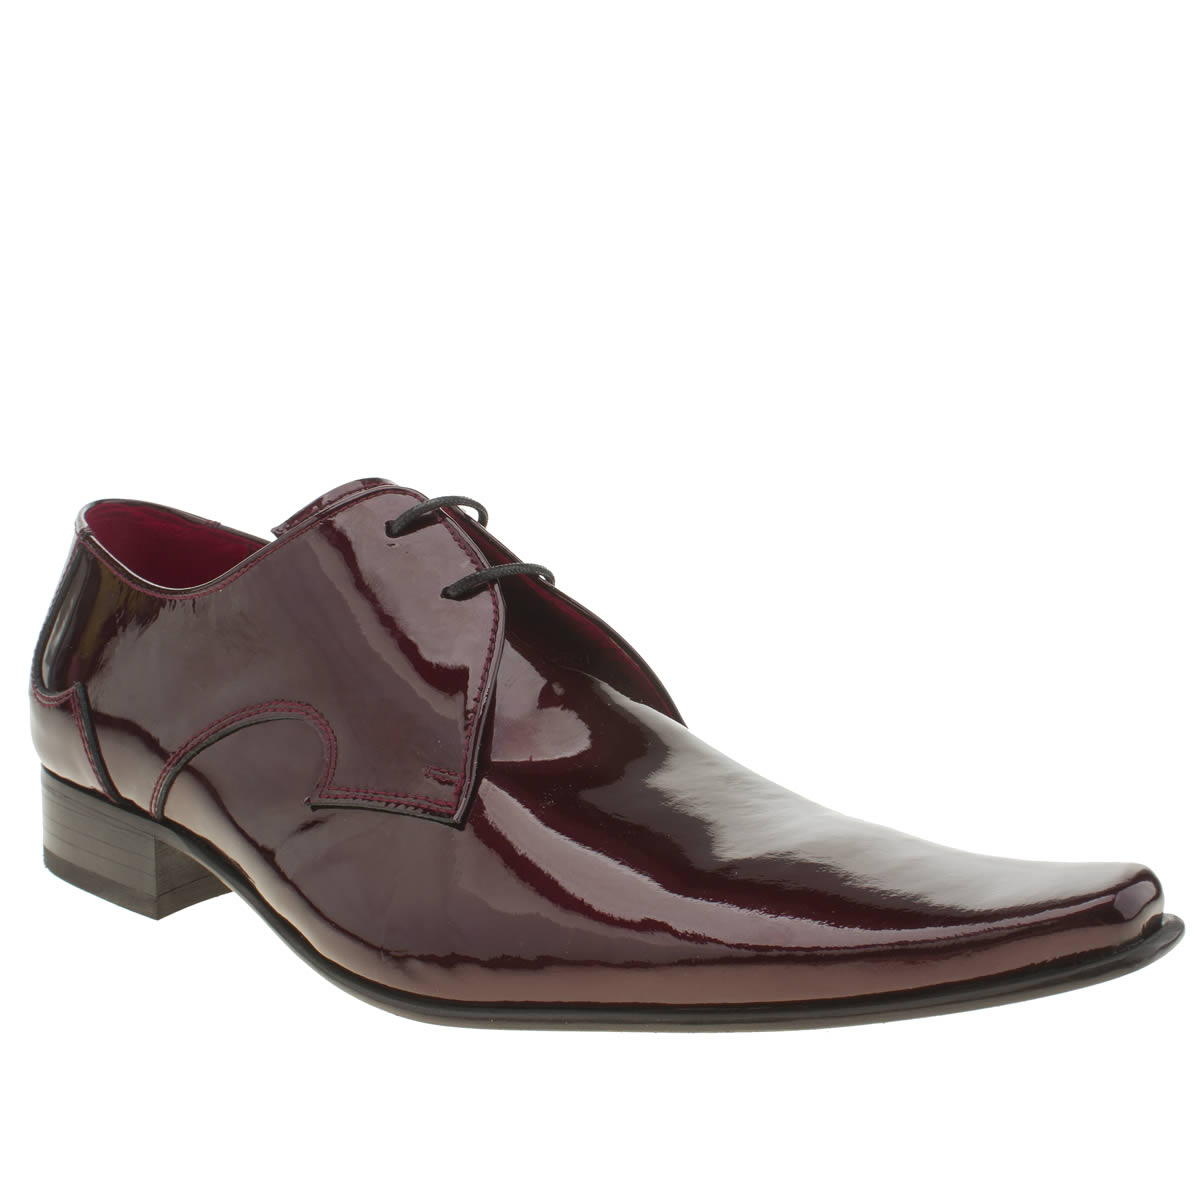 jeffery west shoes mens burgundy jeffery west pino plain vamp shoes | schuh BNMGGAY